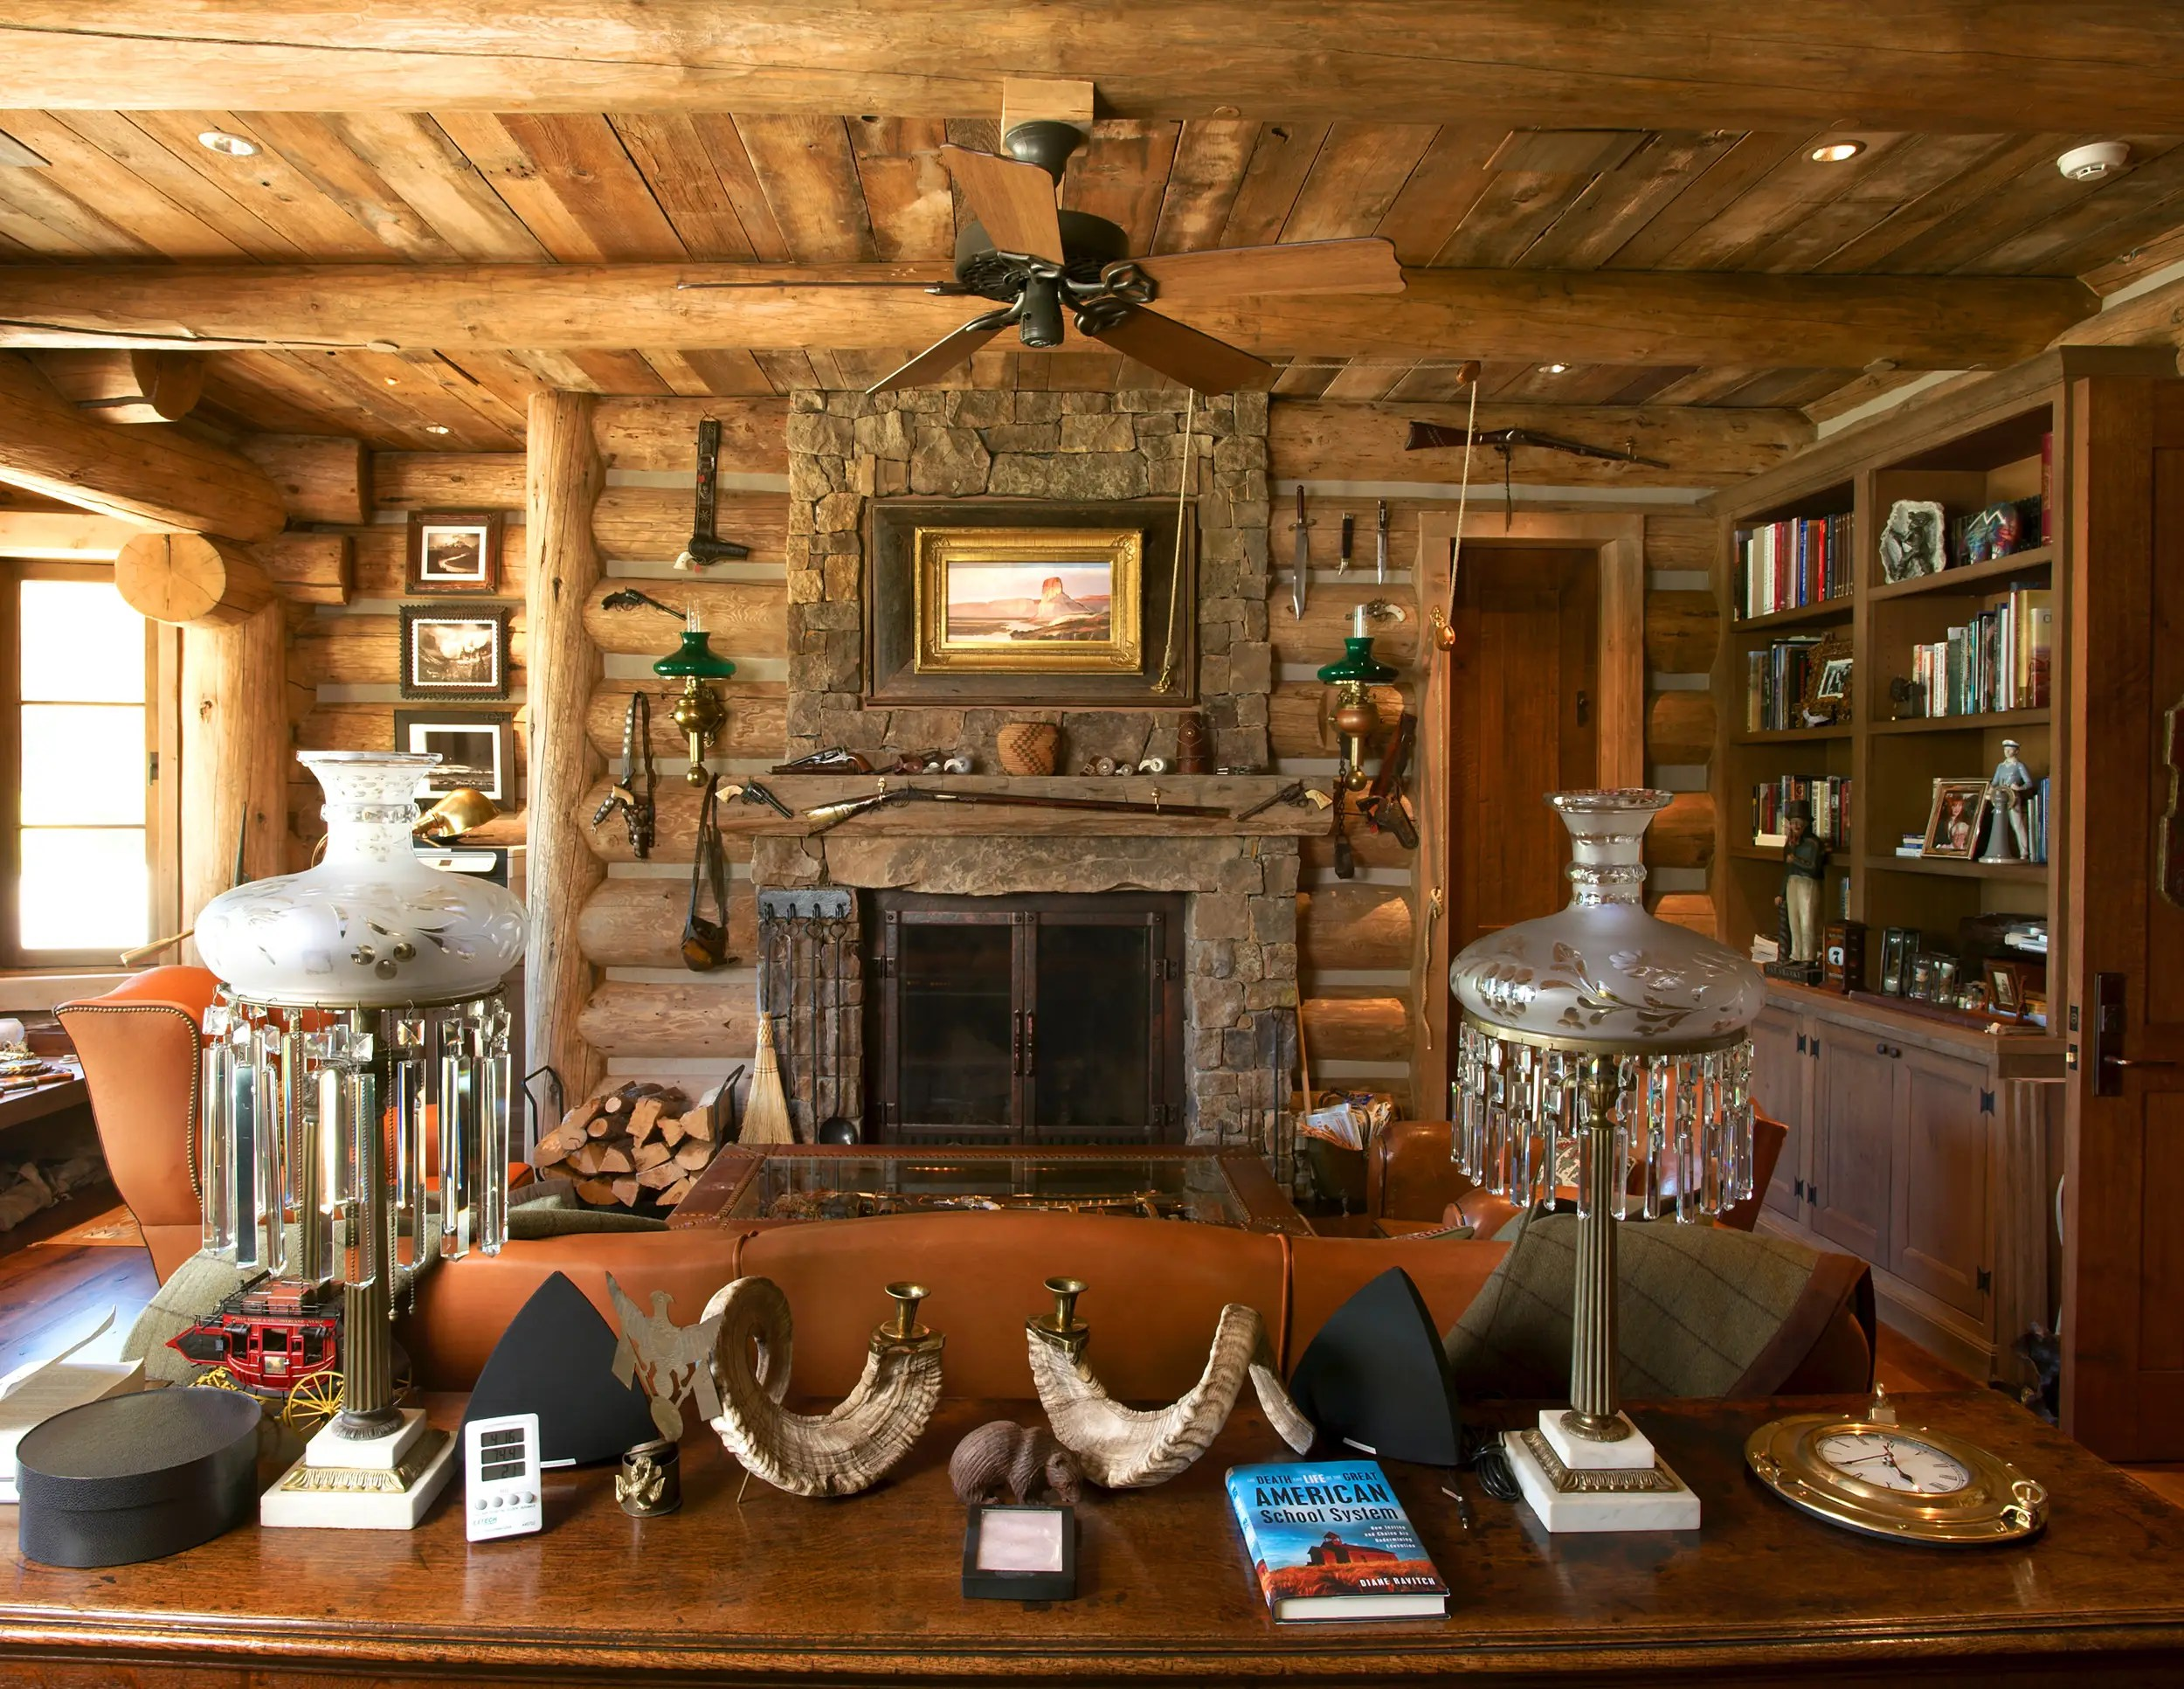 The lodge is decked out in rustic style, with all of the accoutrements you'd expect of a traditional log cabin.